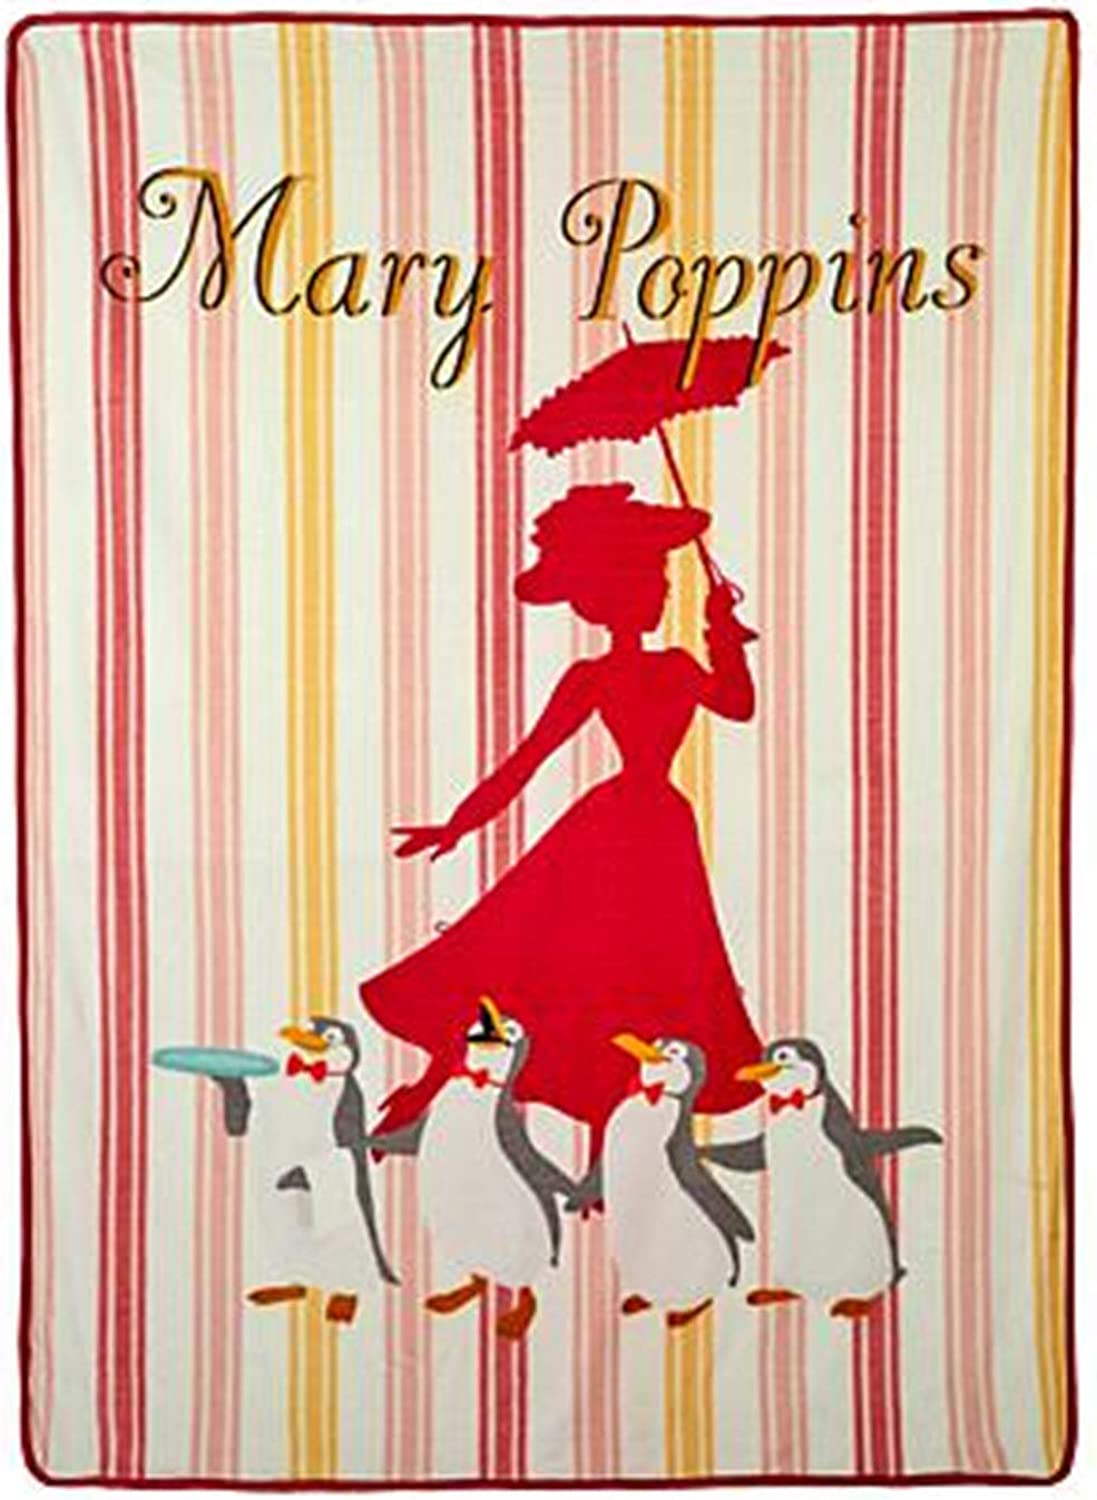 Northwest Mary Poppins Returns Mary and Penguins Silk Touch Throw Blanket 80  x 60